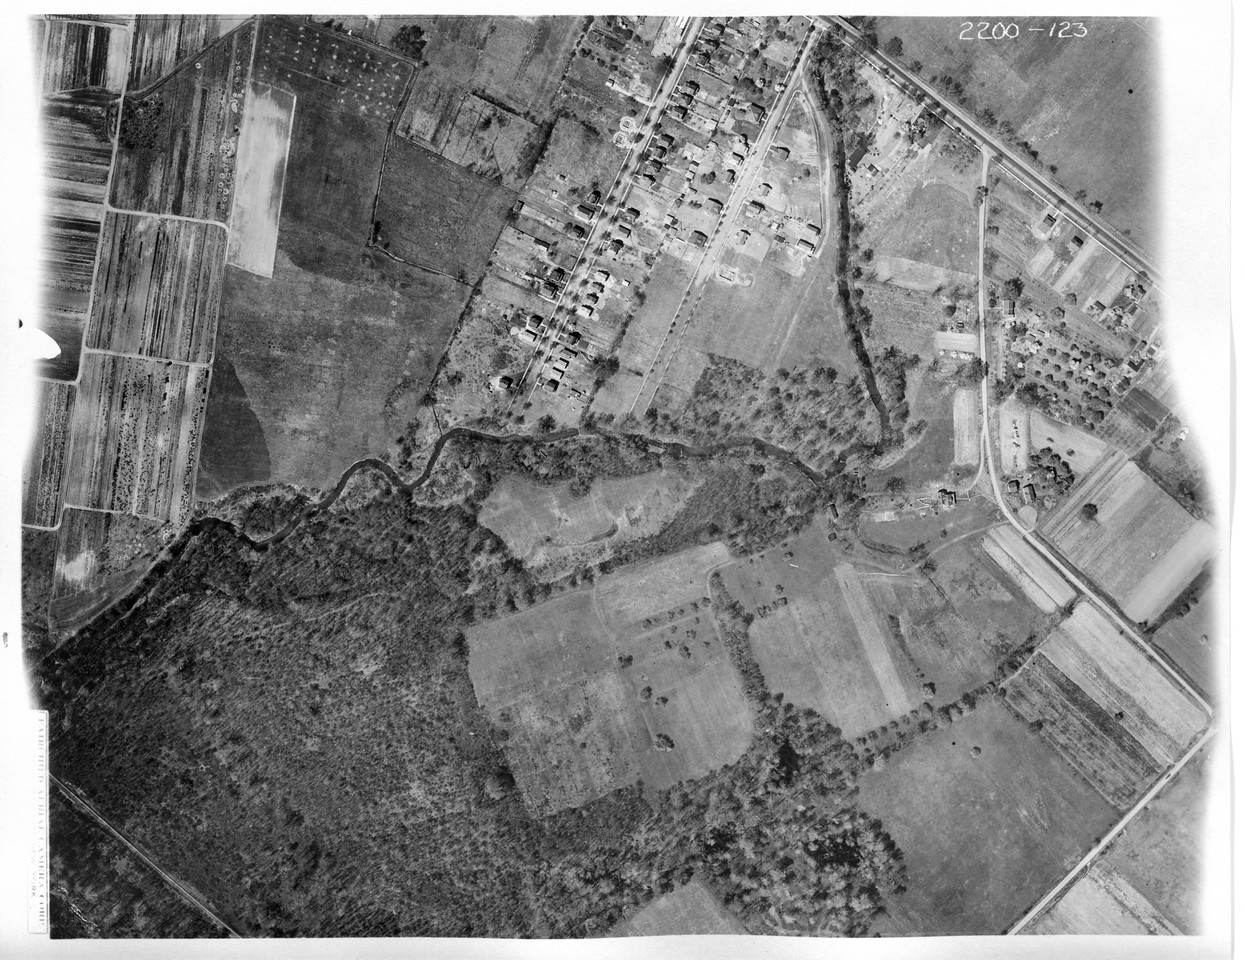 Aerial 123 morris spruce liberty 1923